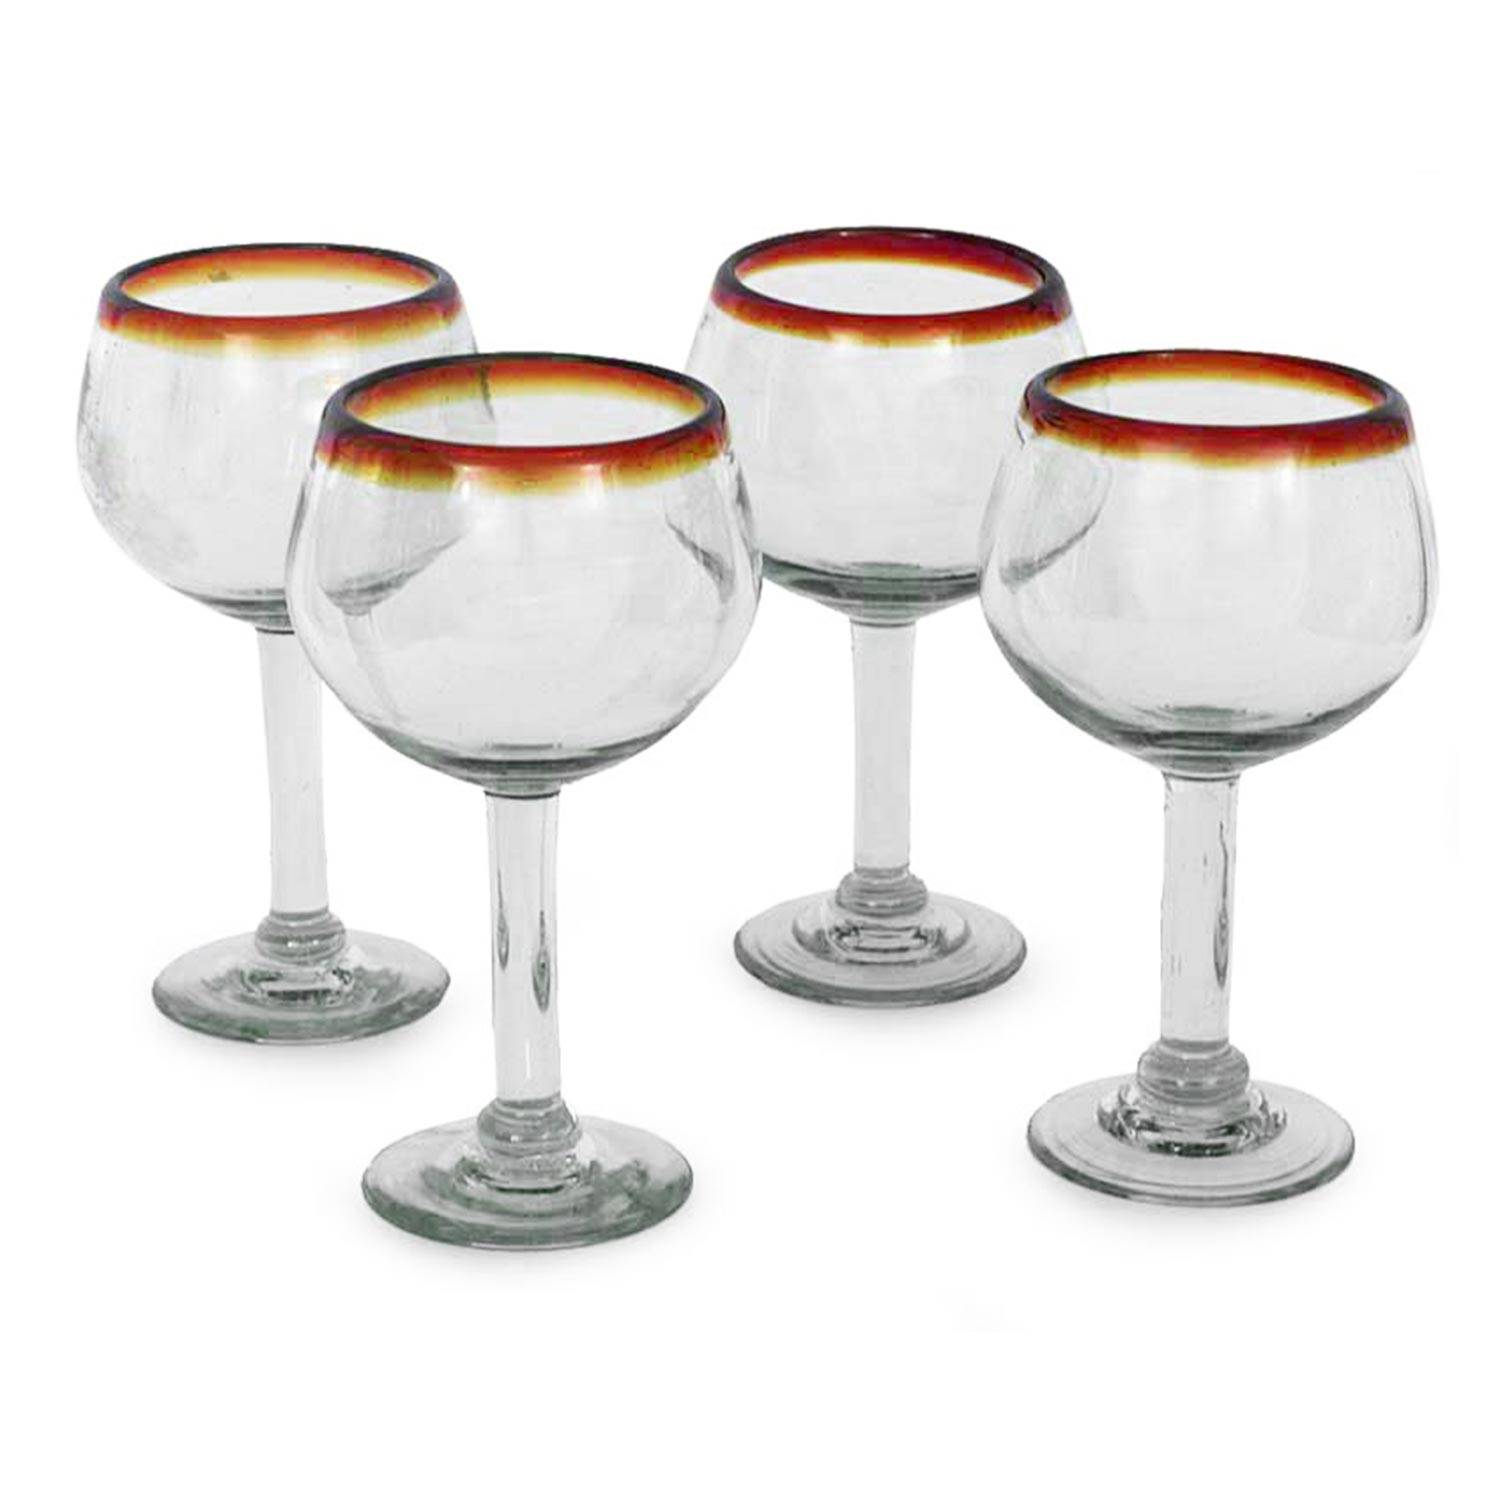 Unicef Market Fair Trade Handblown Glass Recycled Wine Glasses Set Of 4 Amber Globe